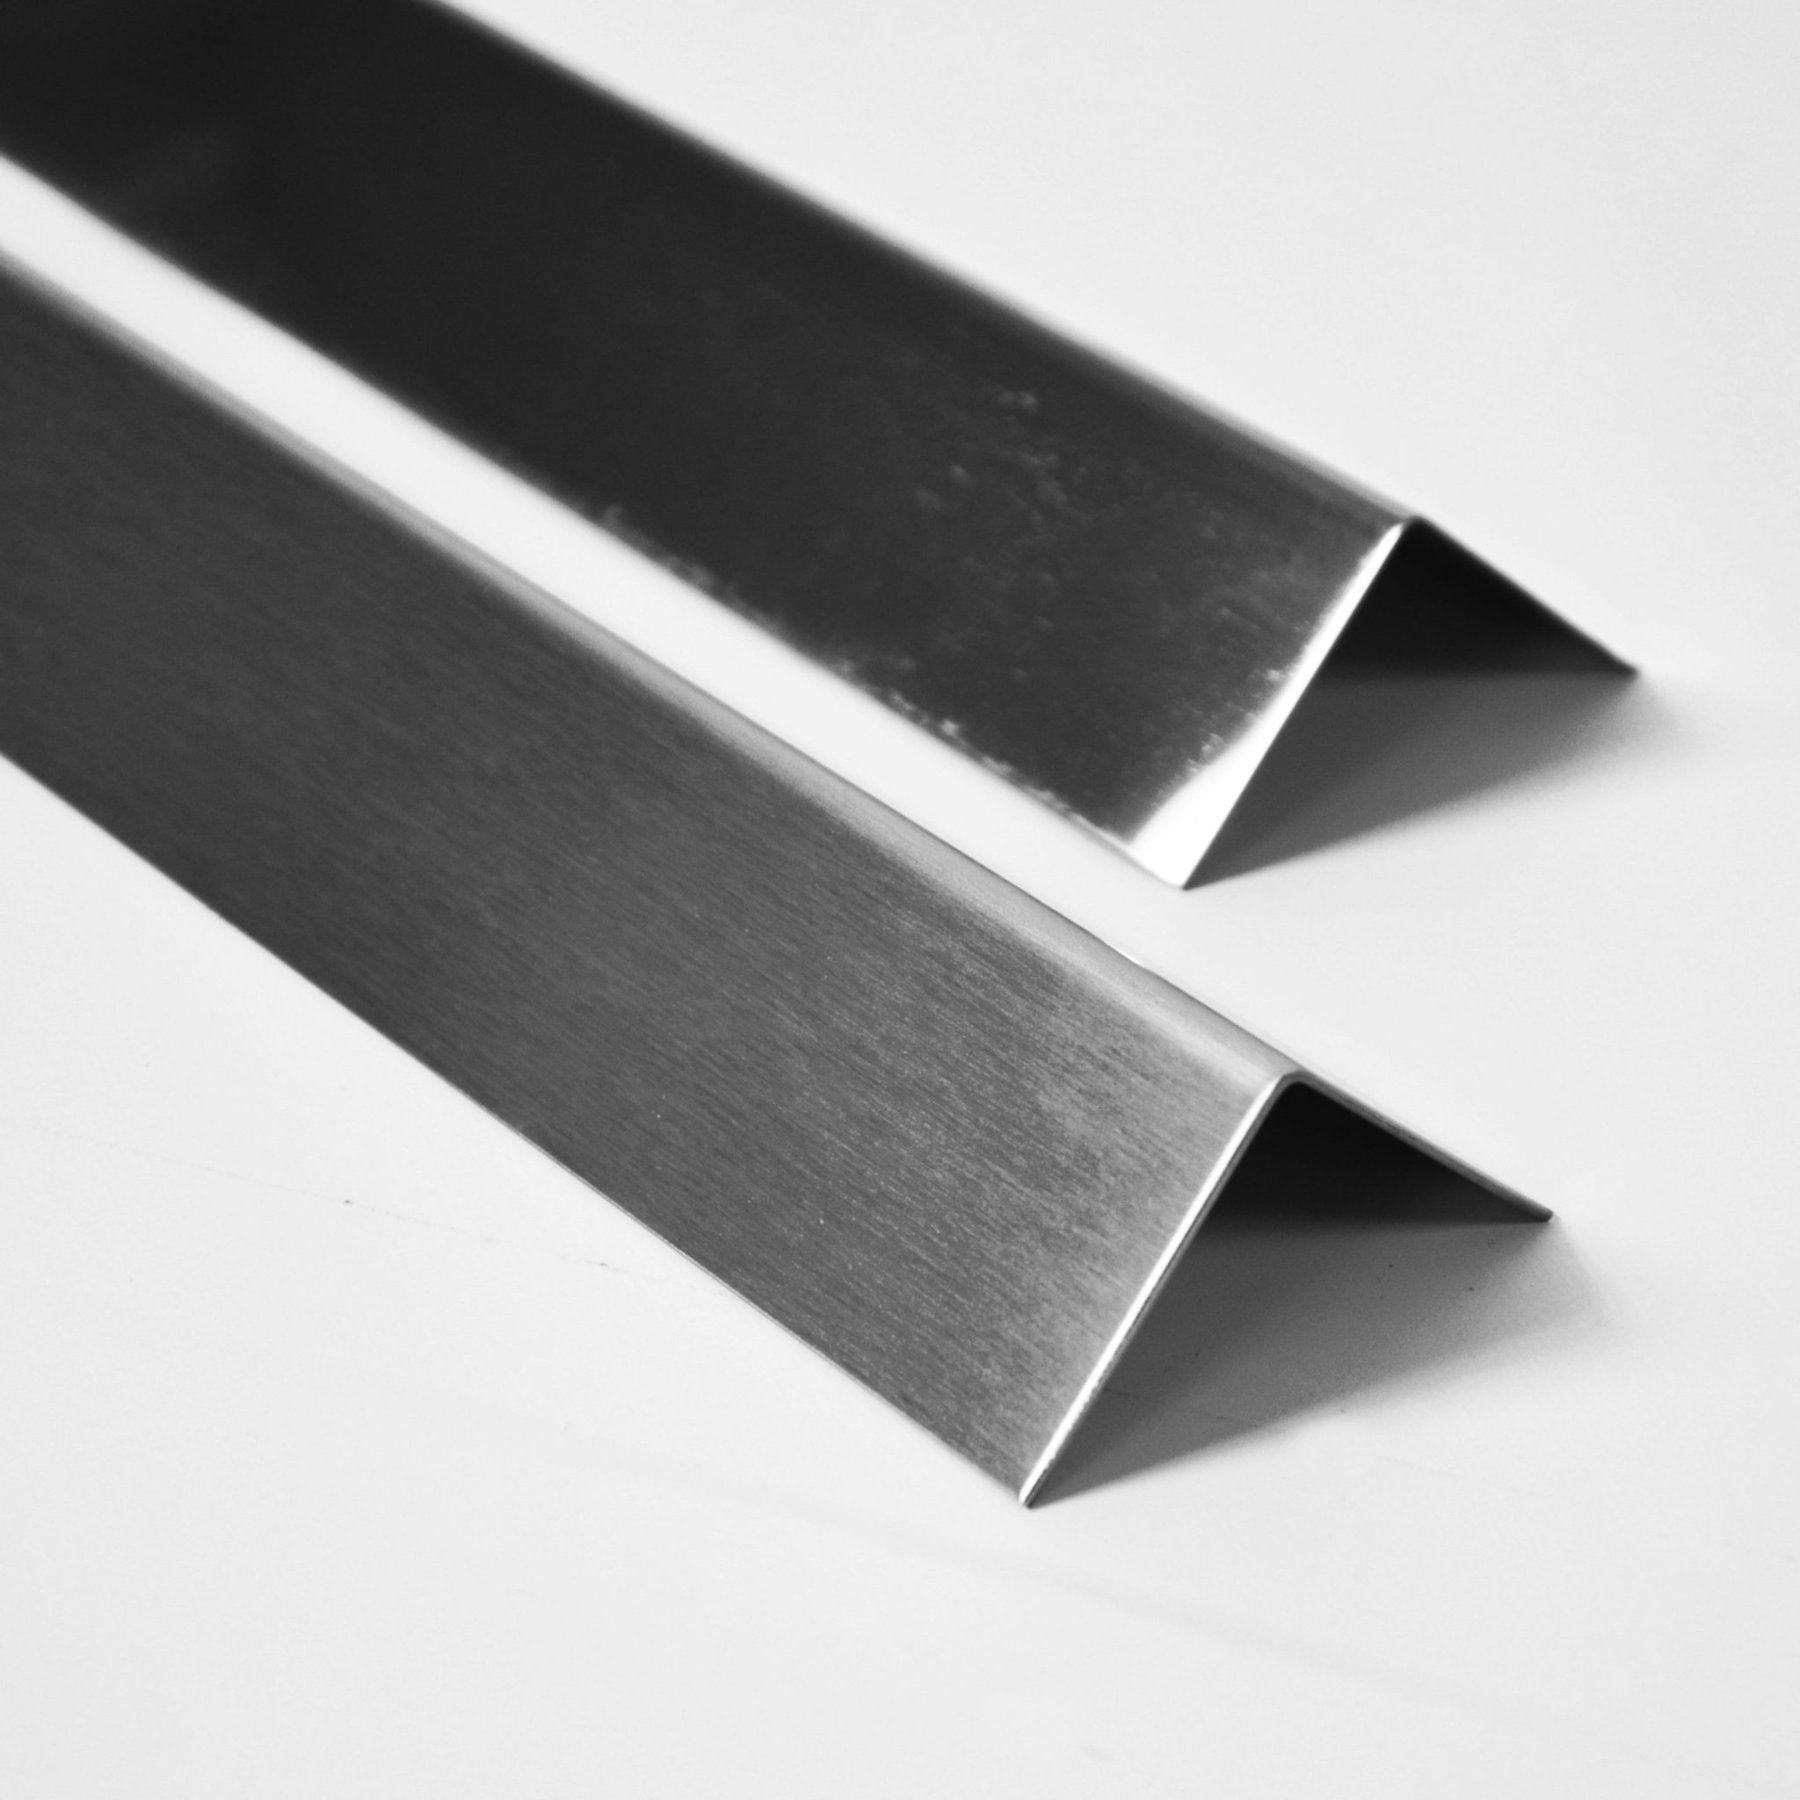 Stainless-Steel Angle Corner Protector - Displaypro